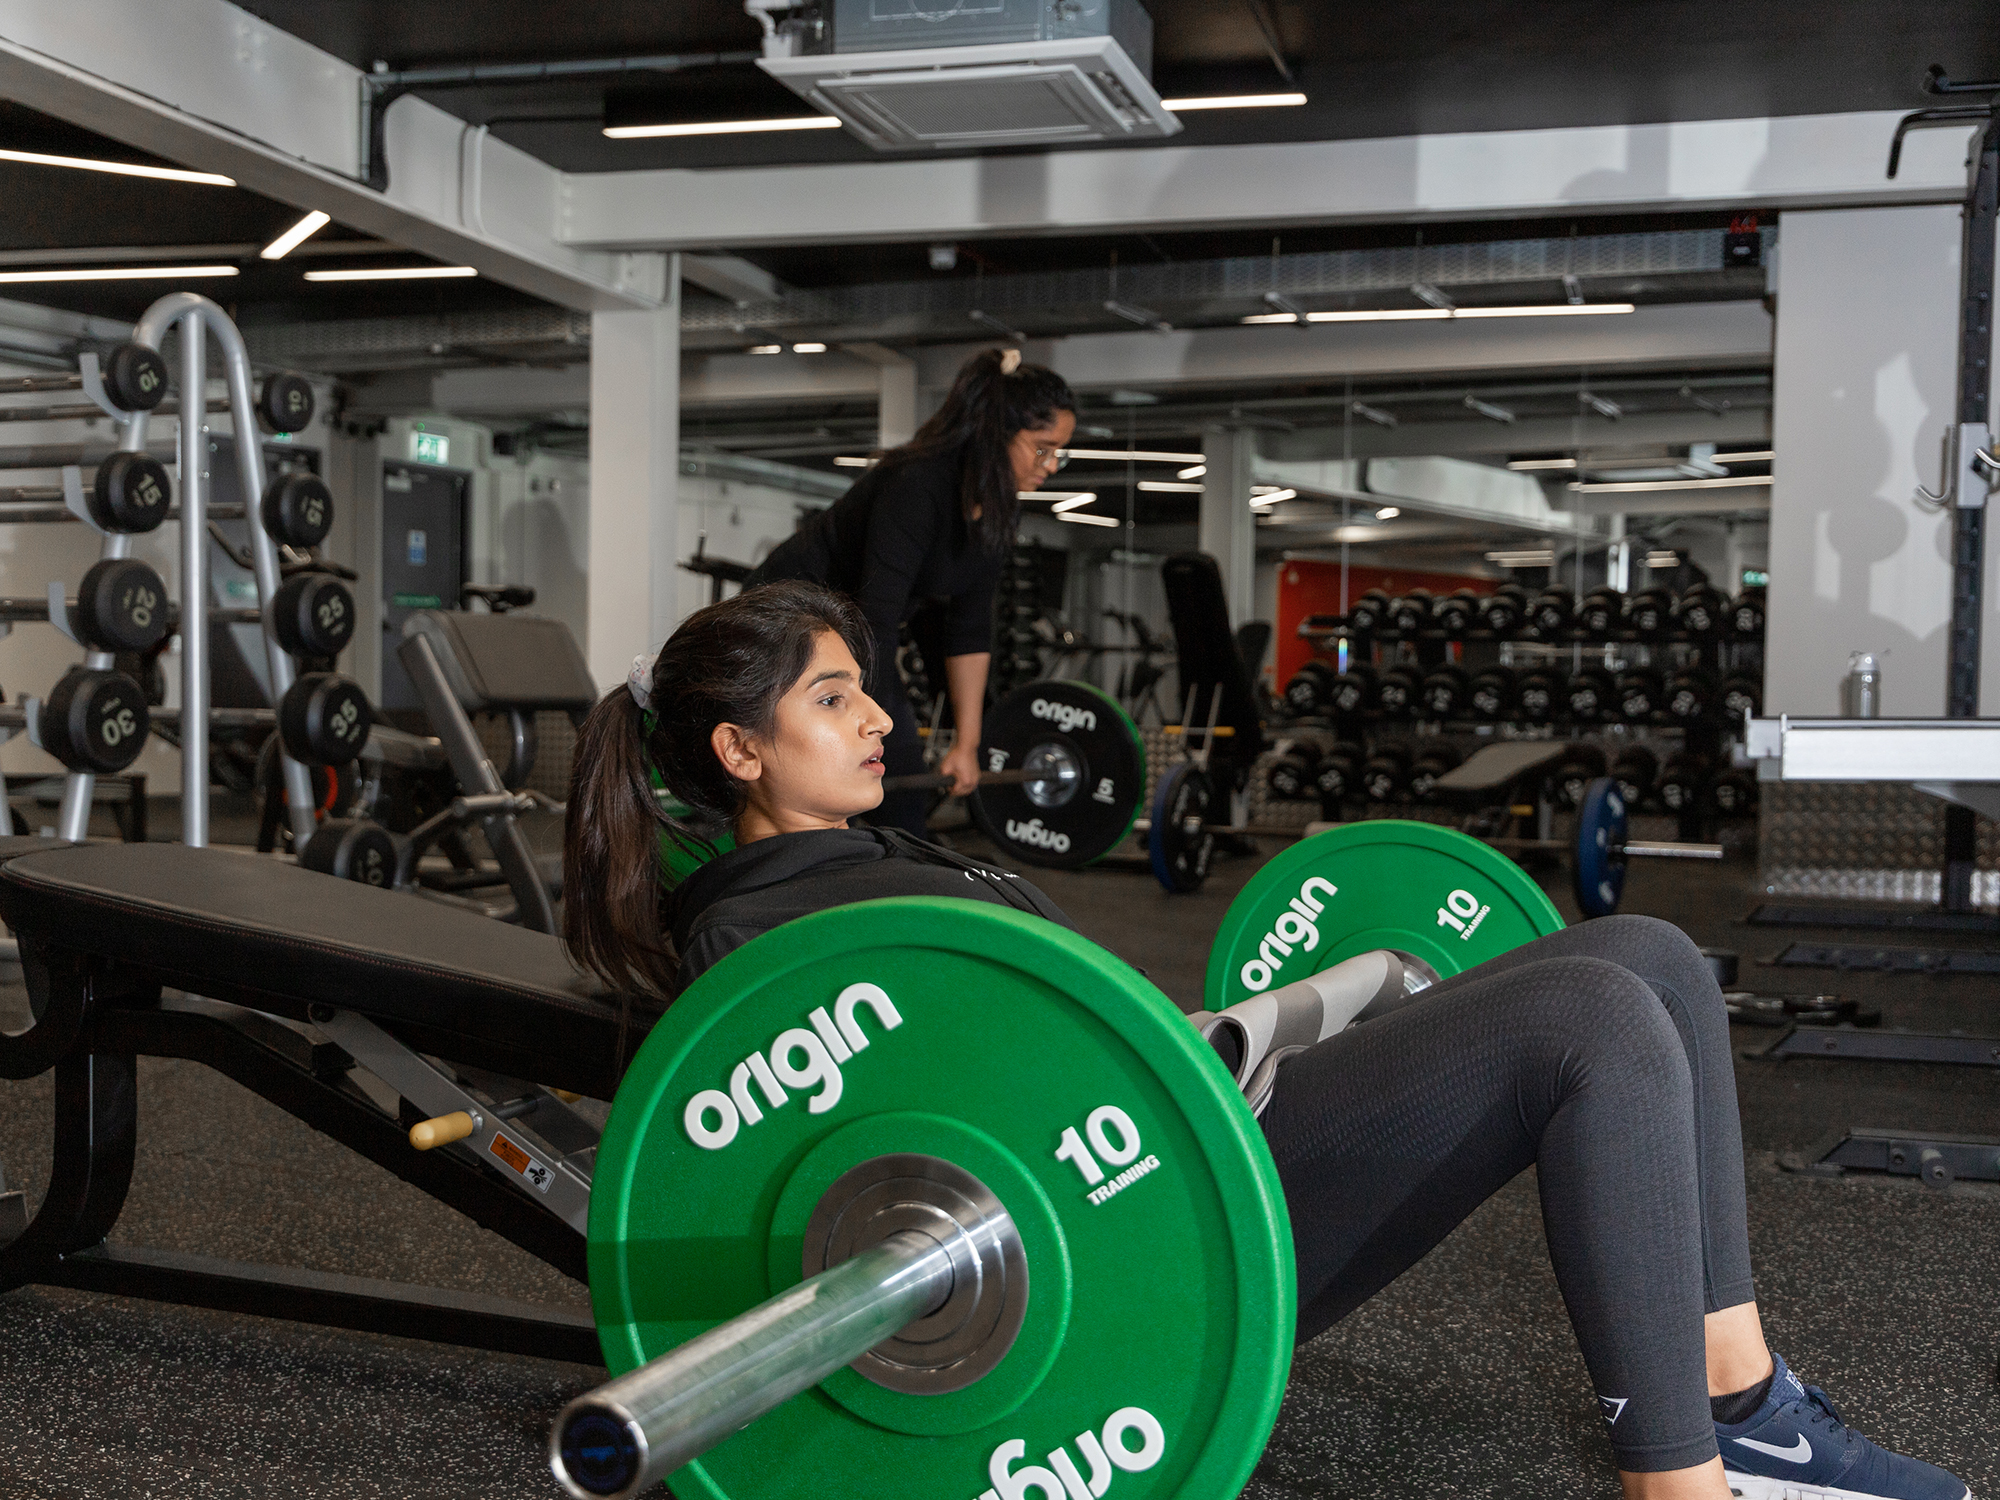 powis place gym with students